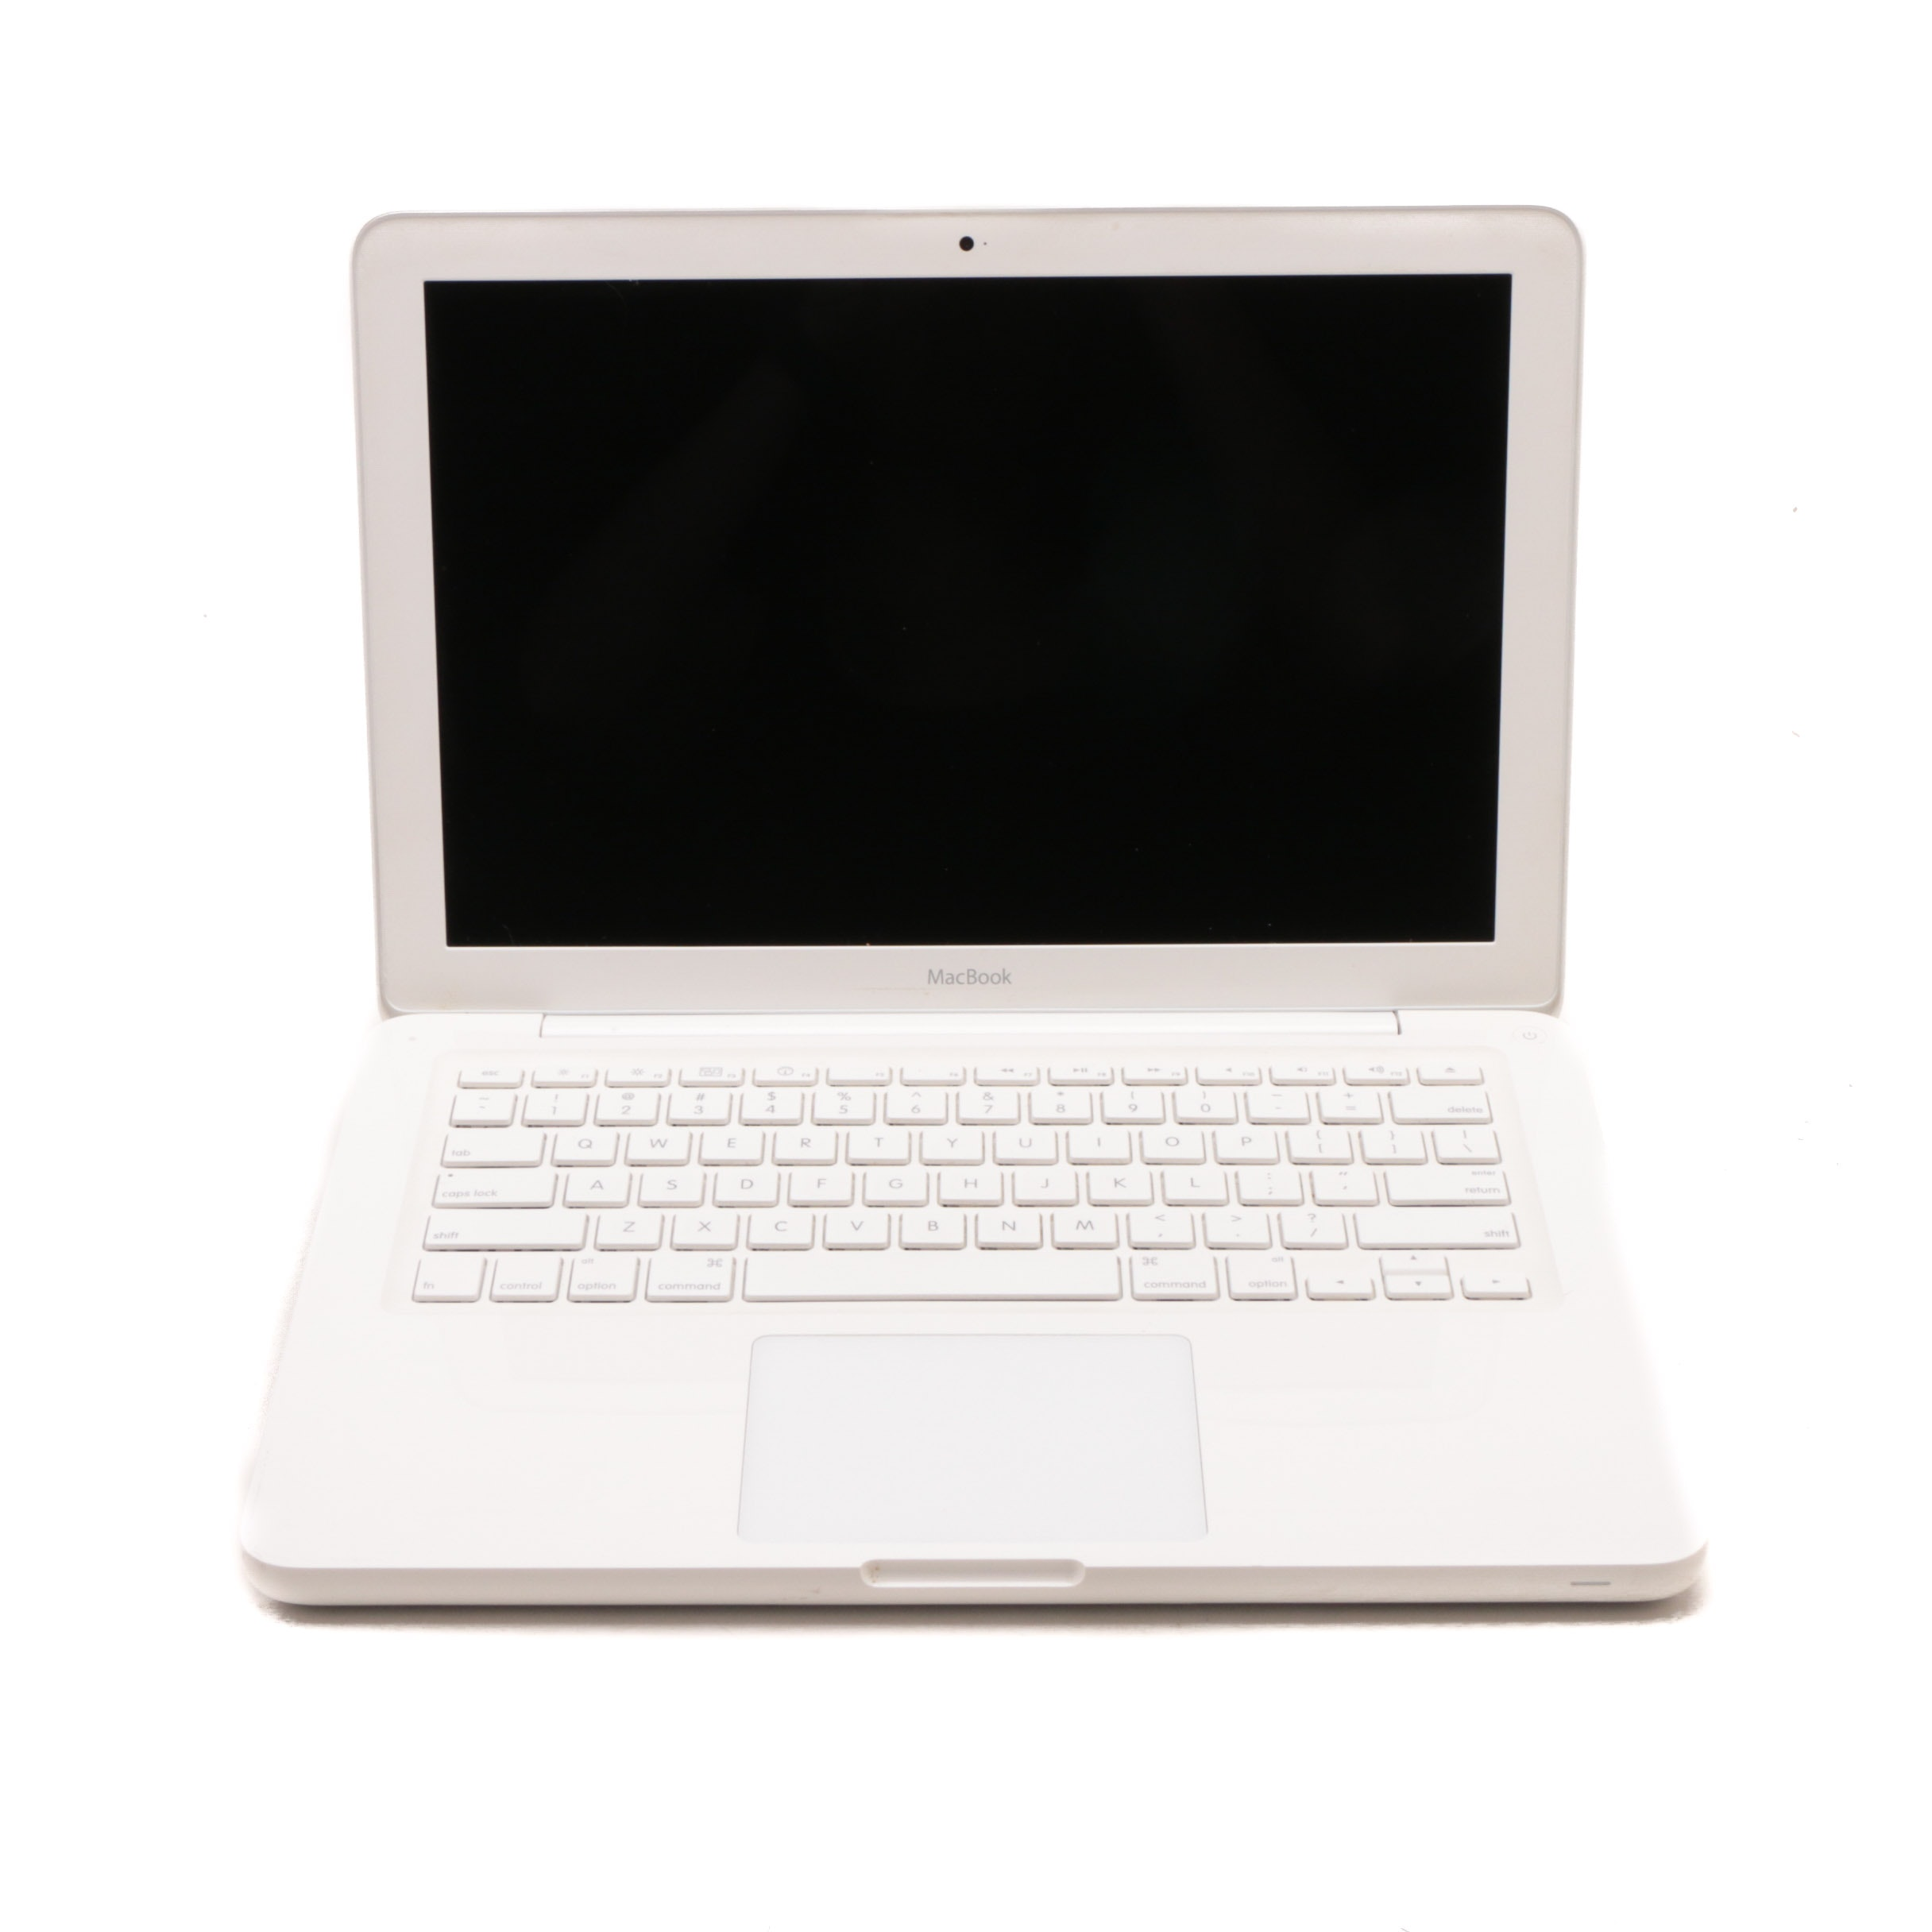 "13"" MacBook Laptop in White"